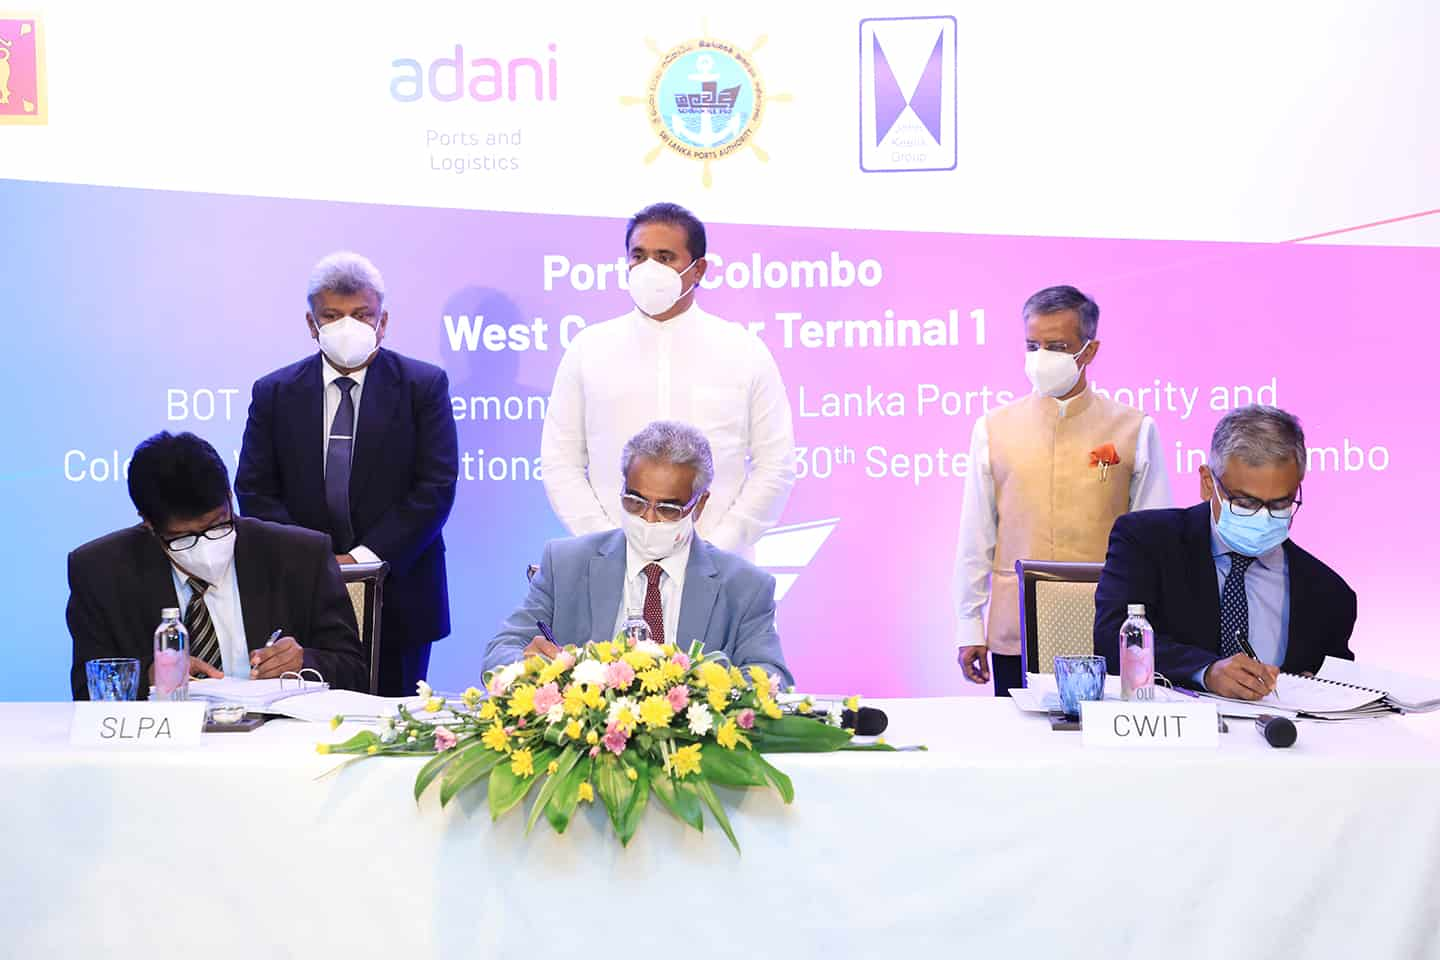 Adani signs US$700m agreement for new deep-water terminal in Colombo